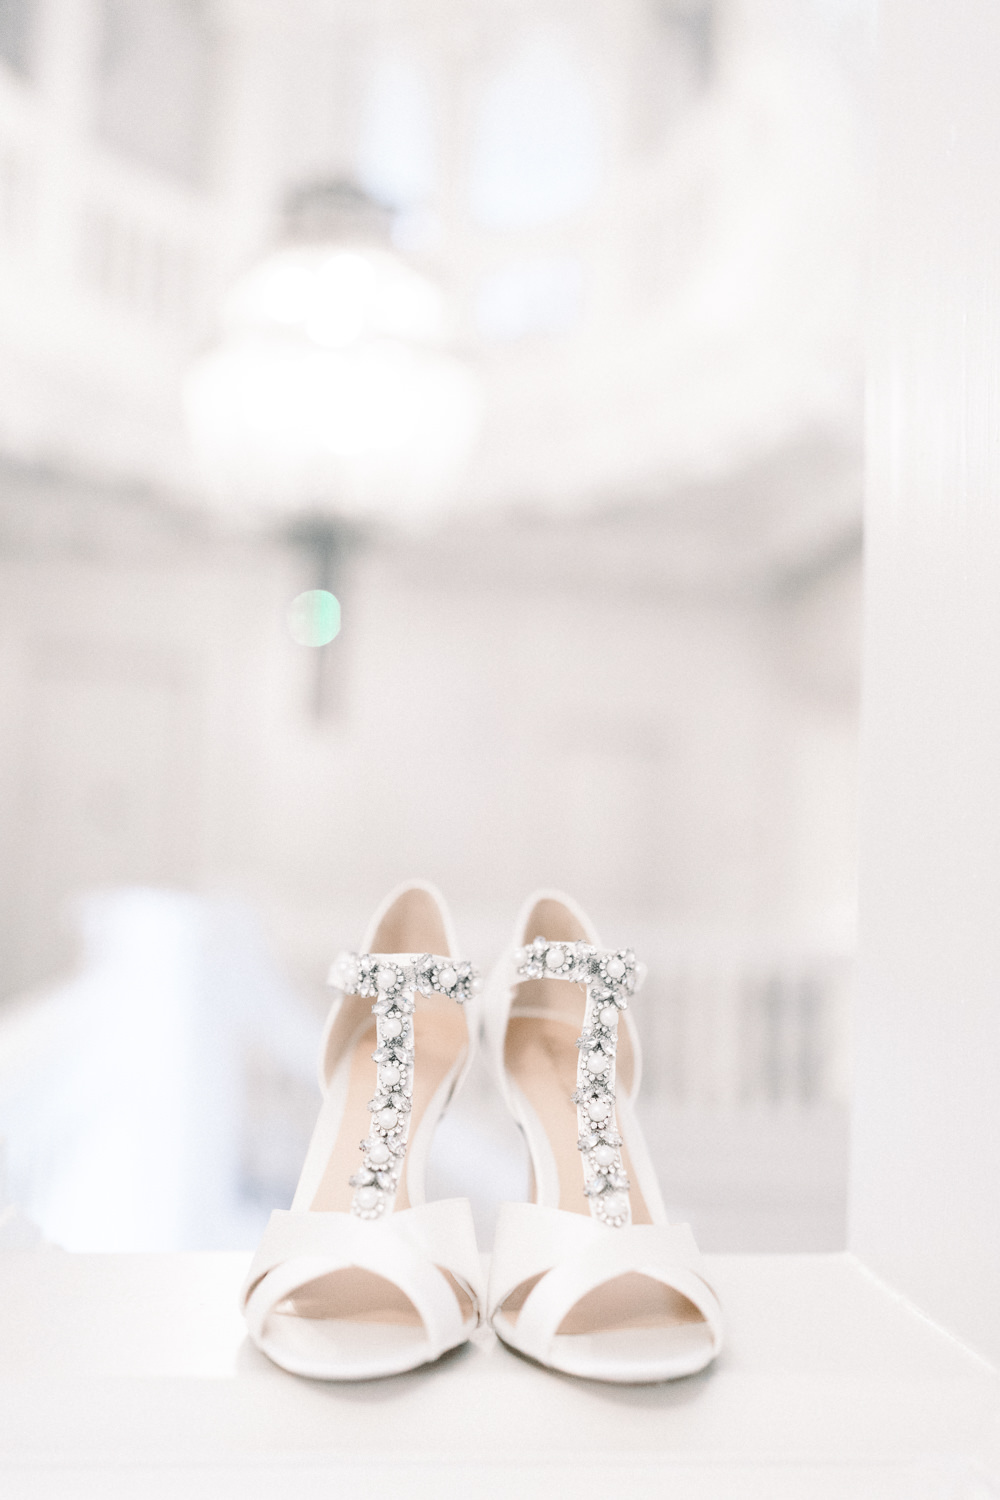 Shoes Bride Bridal Peals Gate Street Barn Wedding Camilla J Hards